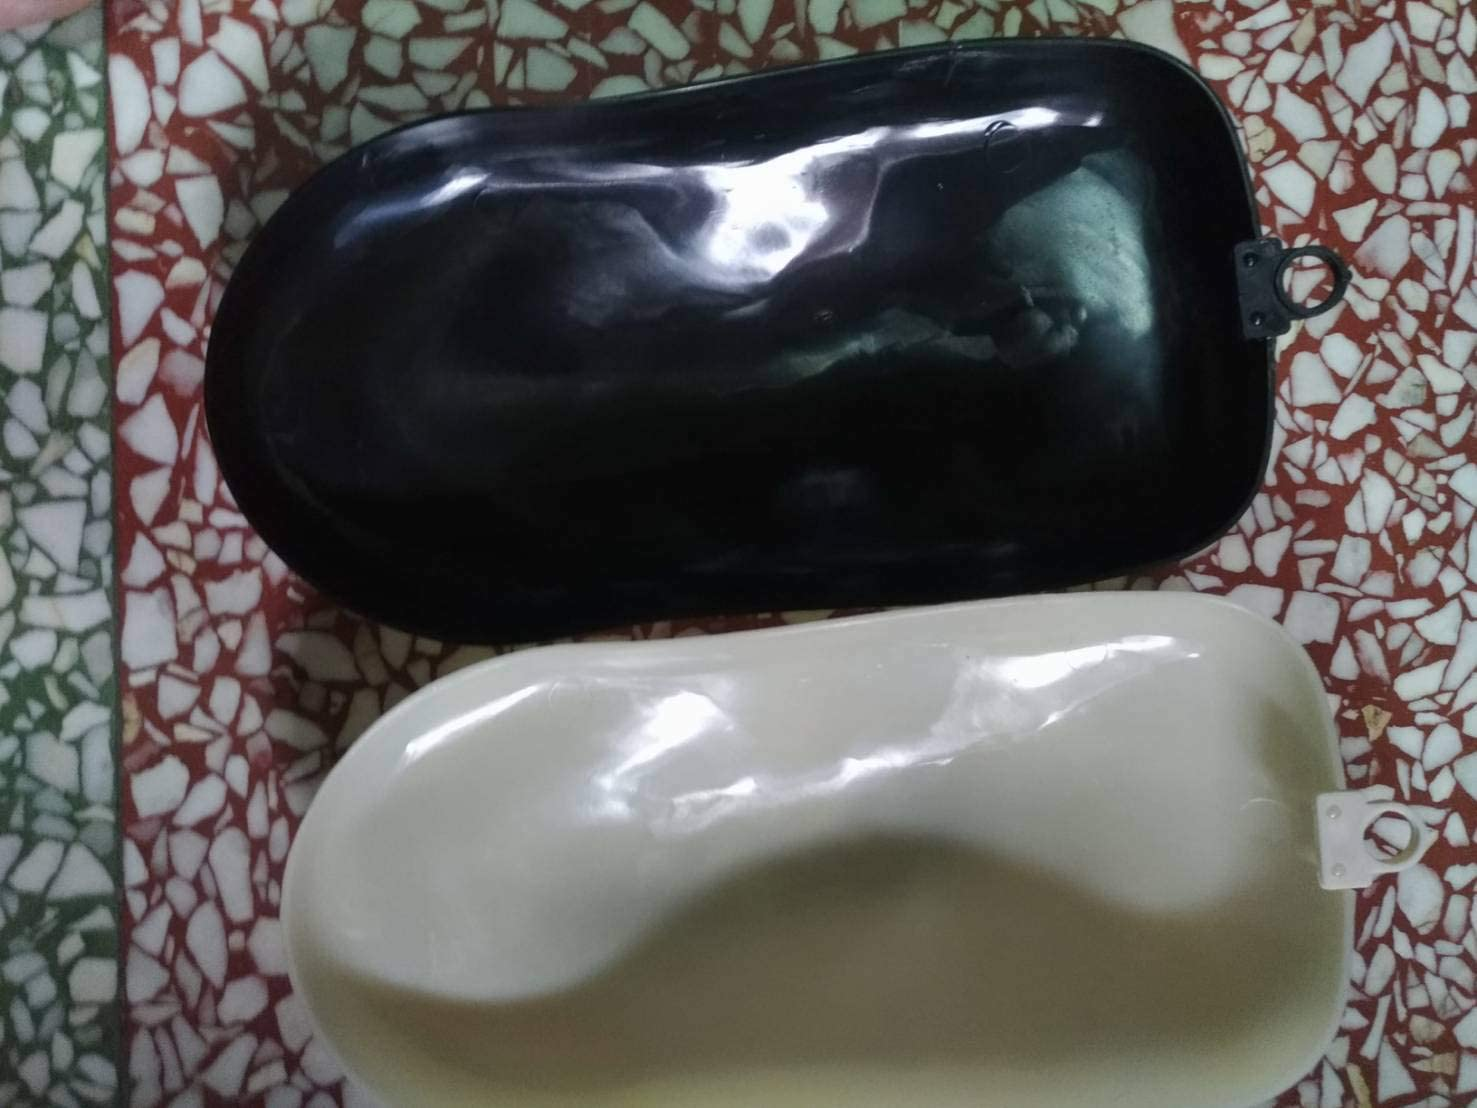 Black ABS Speed shape-10pcs pack For water transfer printing//hydro dipping and painting practicing and demonstration